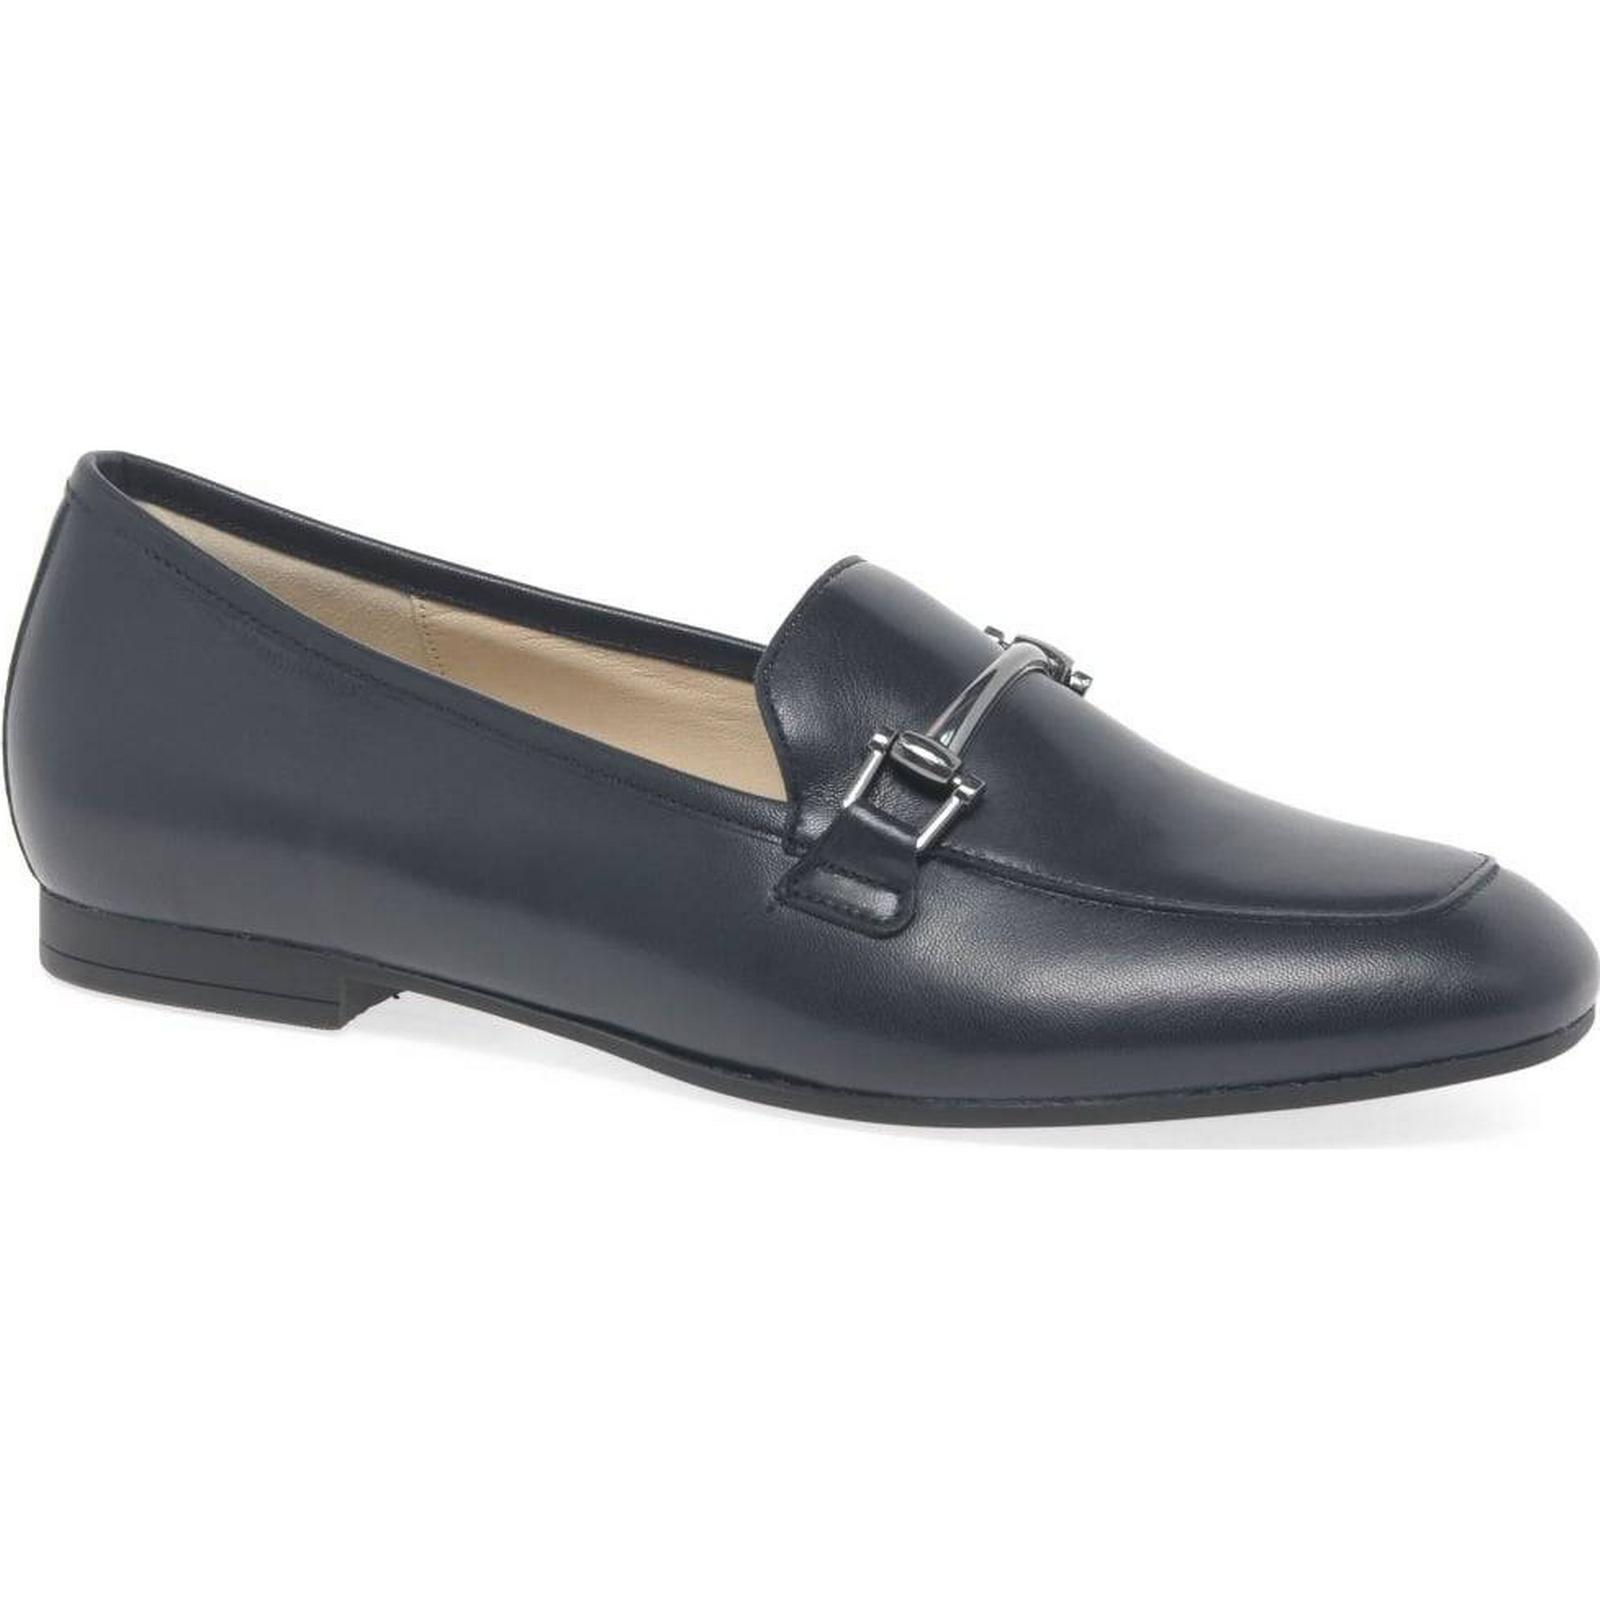 Gabor Serin Womens Slip On 6 Moccasins Colour: Navy, Size: 6 On 7e7bbd